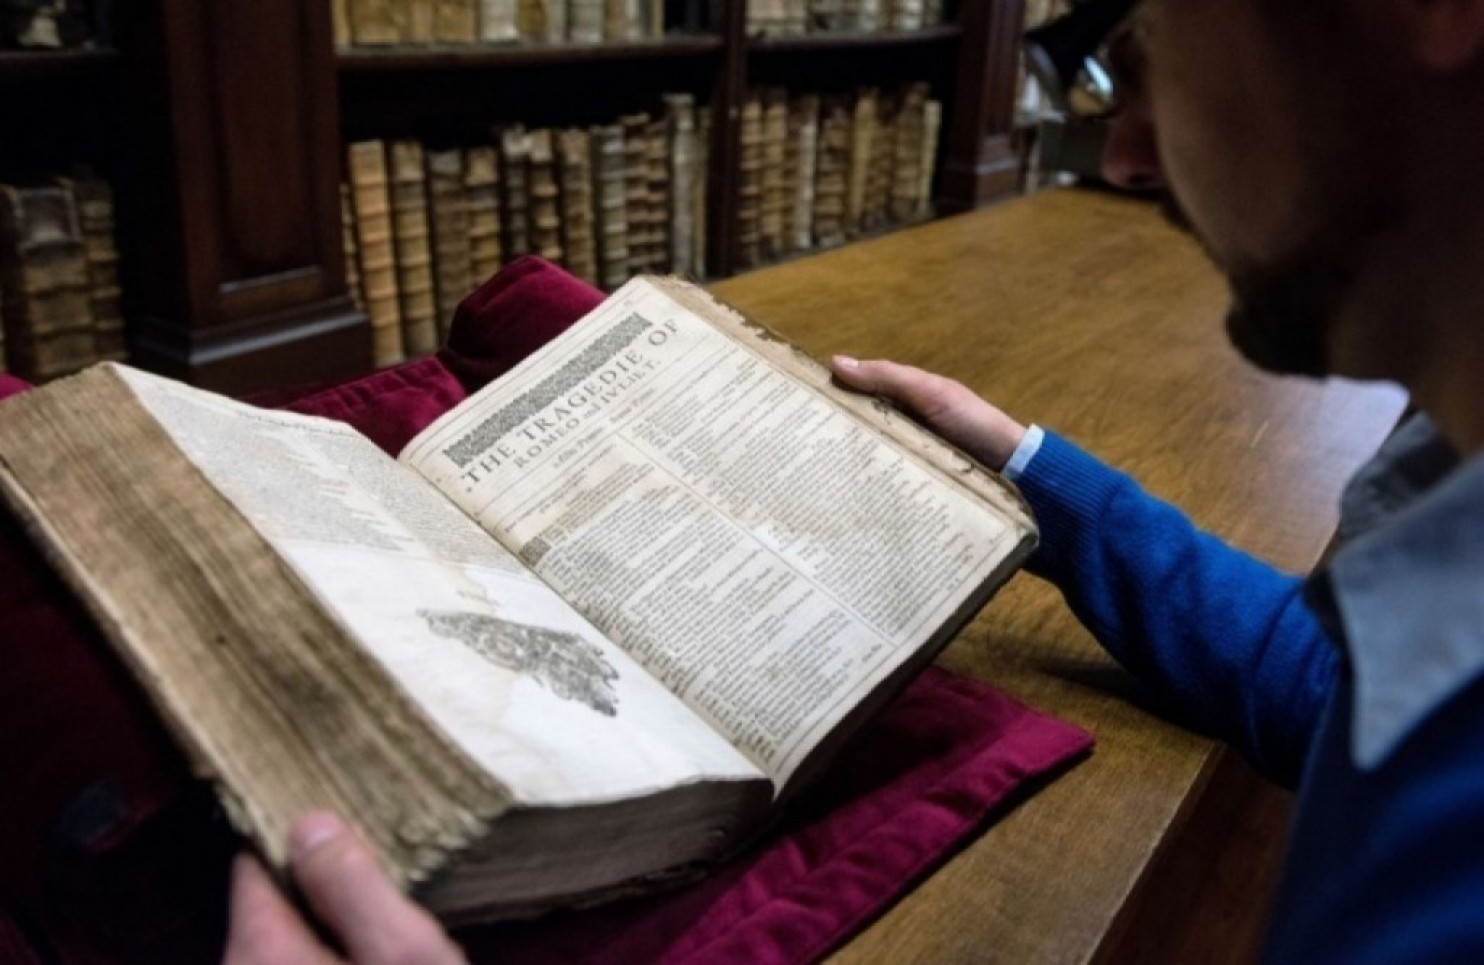 Remy Cordonnier shows a valuable Shakespeare First Folio, a collection of some of his plays that dates to 1623. Around 230 copies are known to exist in collections or in private hands around the world. (AFP PHOTO/DENIS CHARLET)